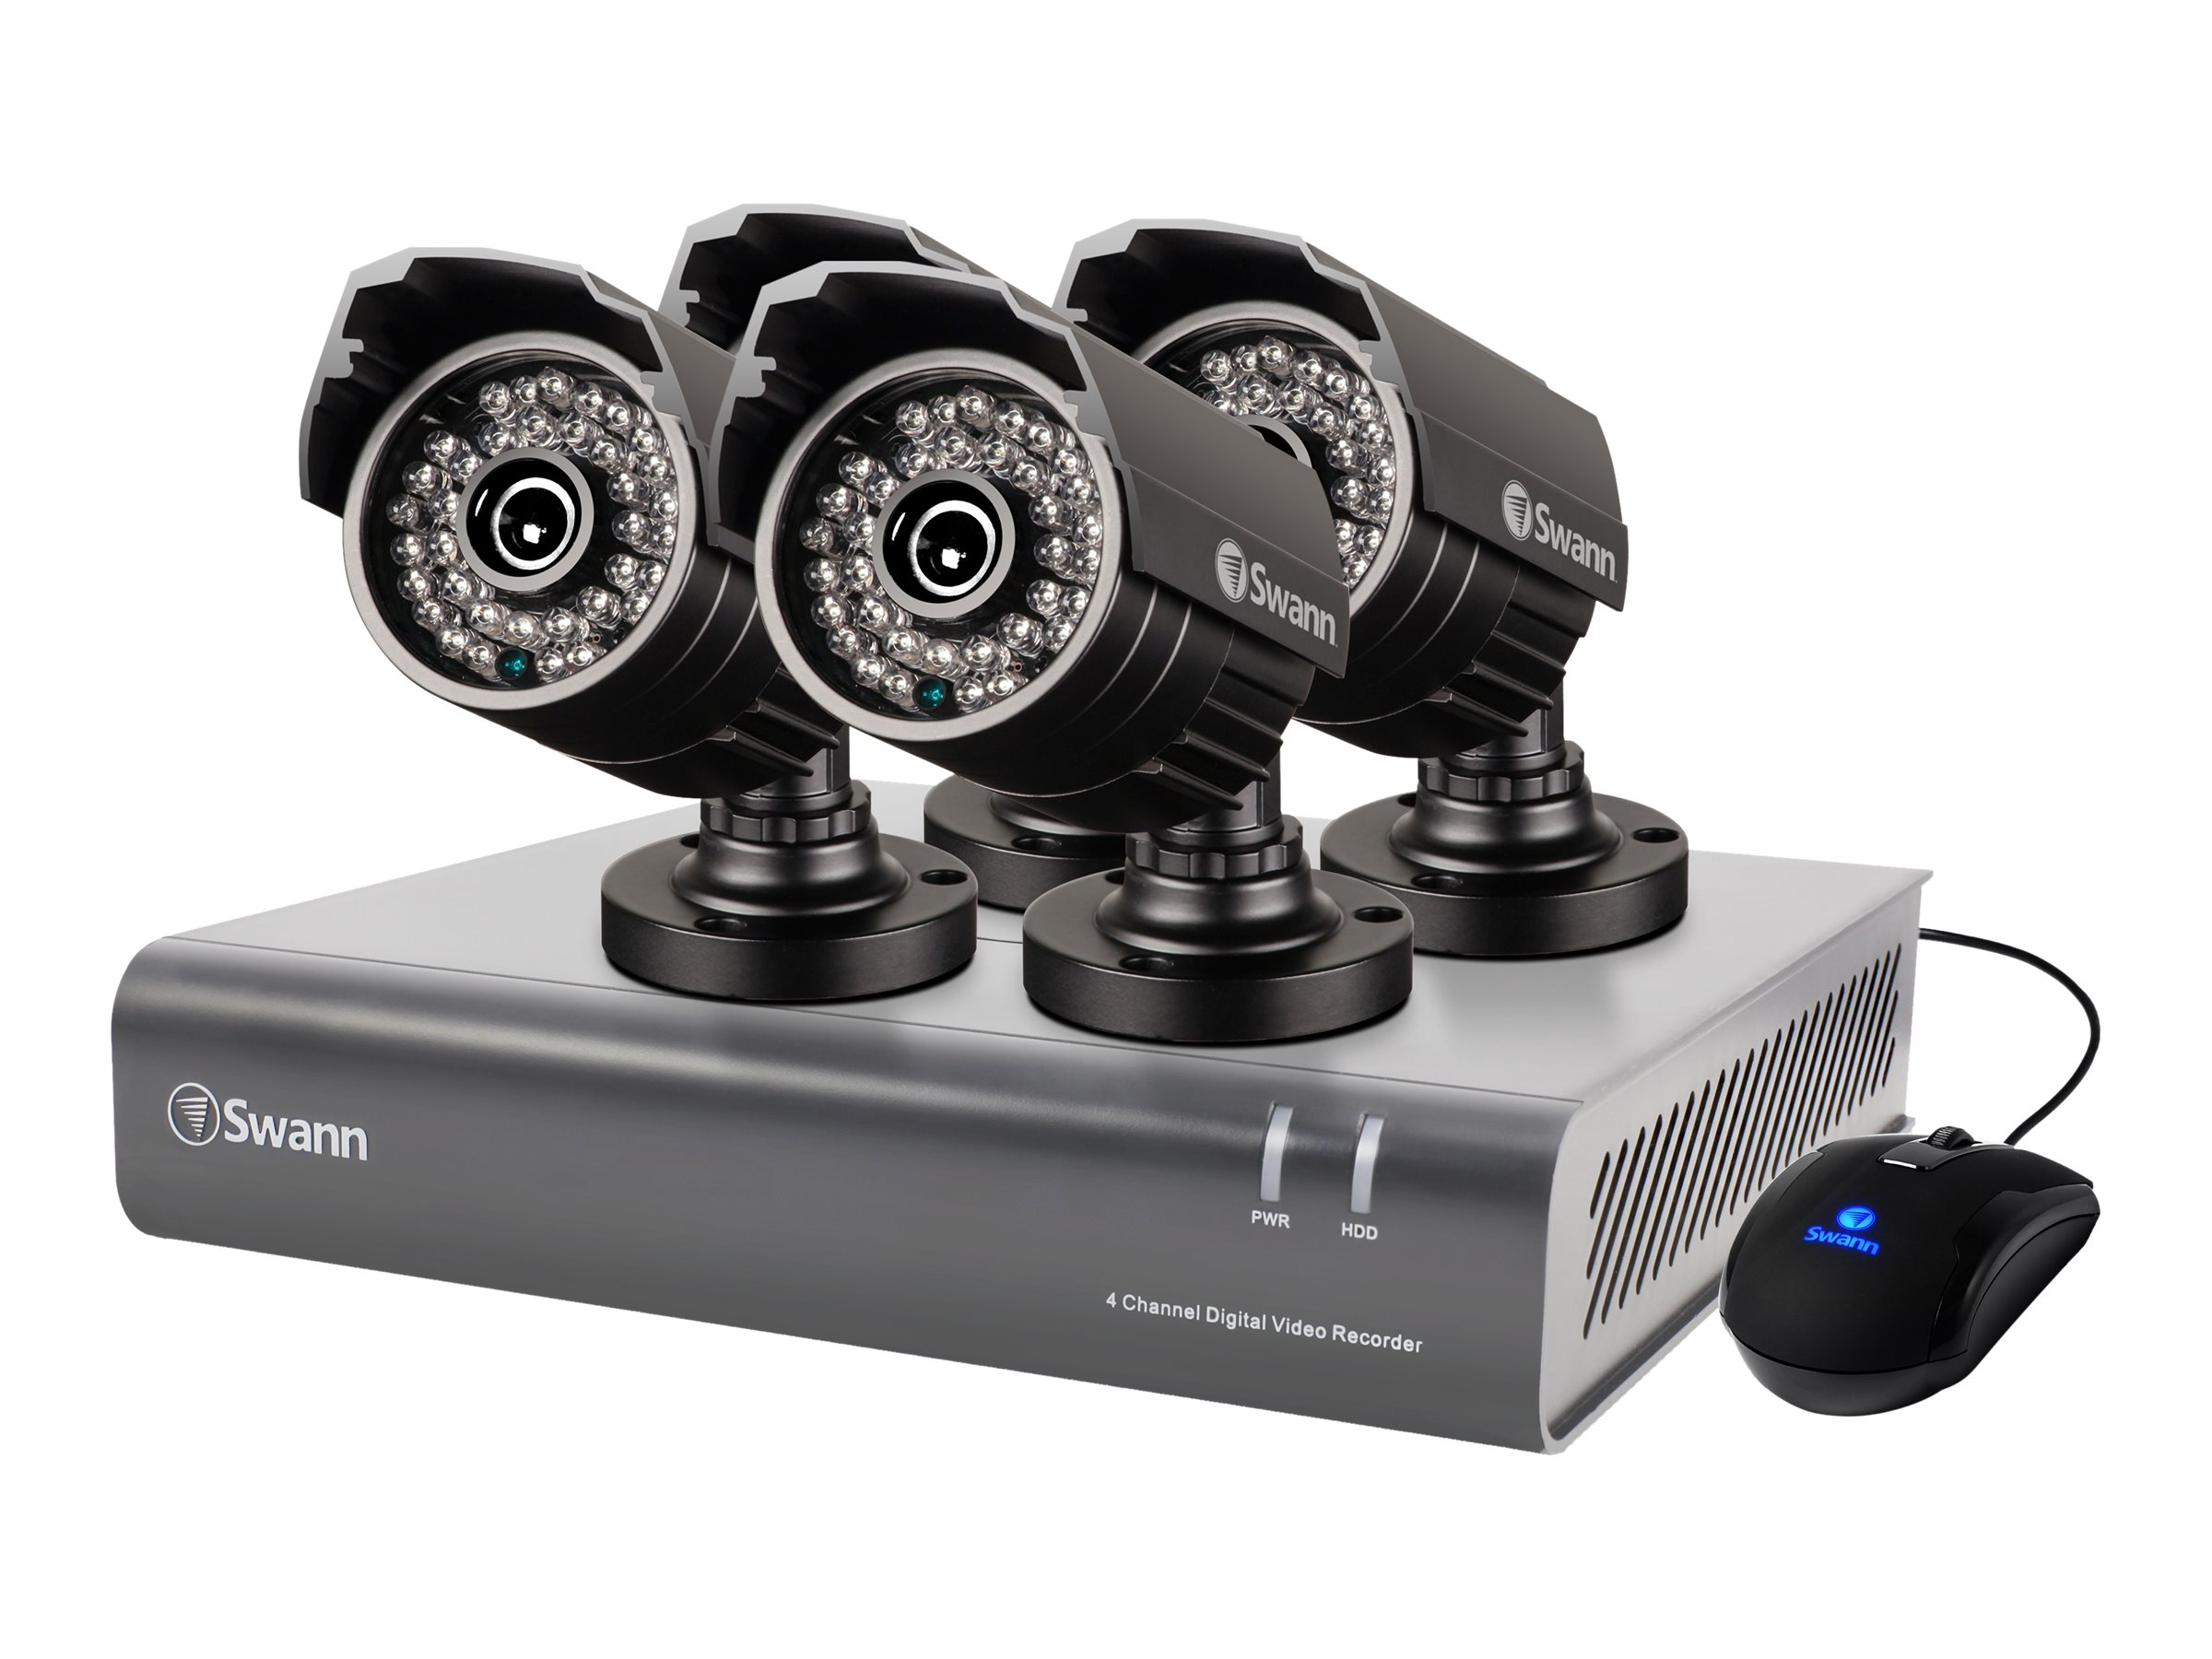 Swann 4 Channel 720p Digital Video Recorder and 4x PRO-A850 Cameras, SWDVK-444004A-US, 20661674, Video Capture Hardware